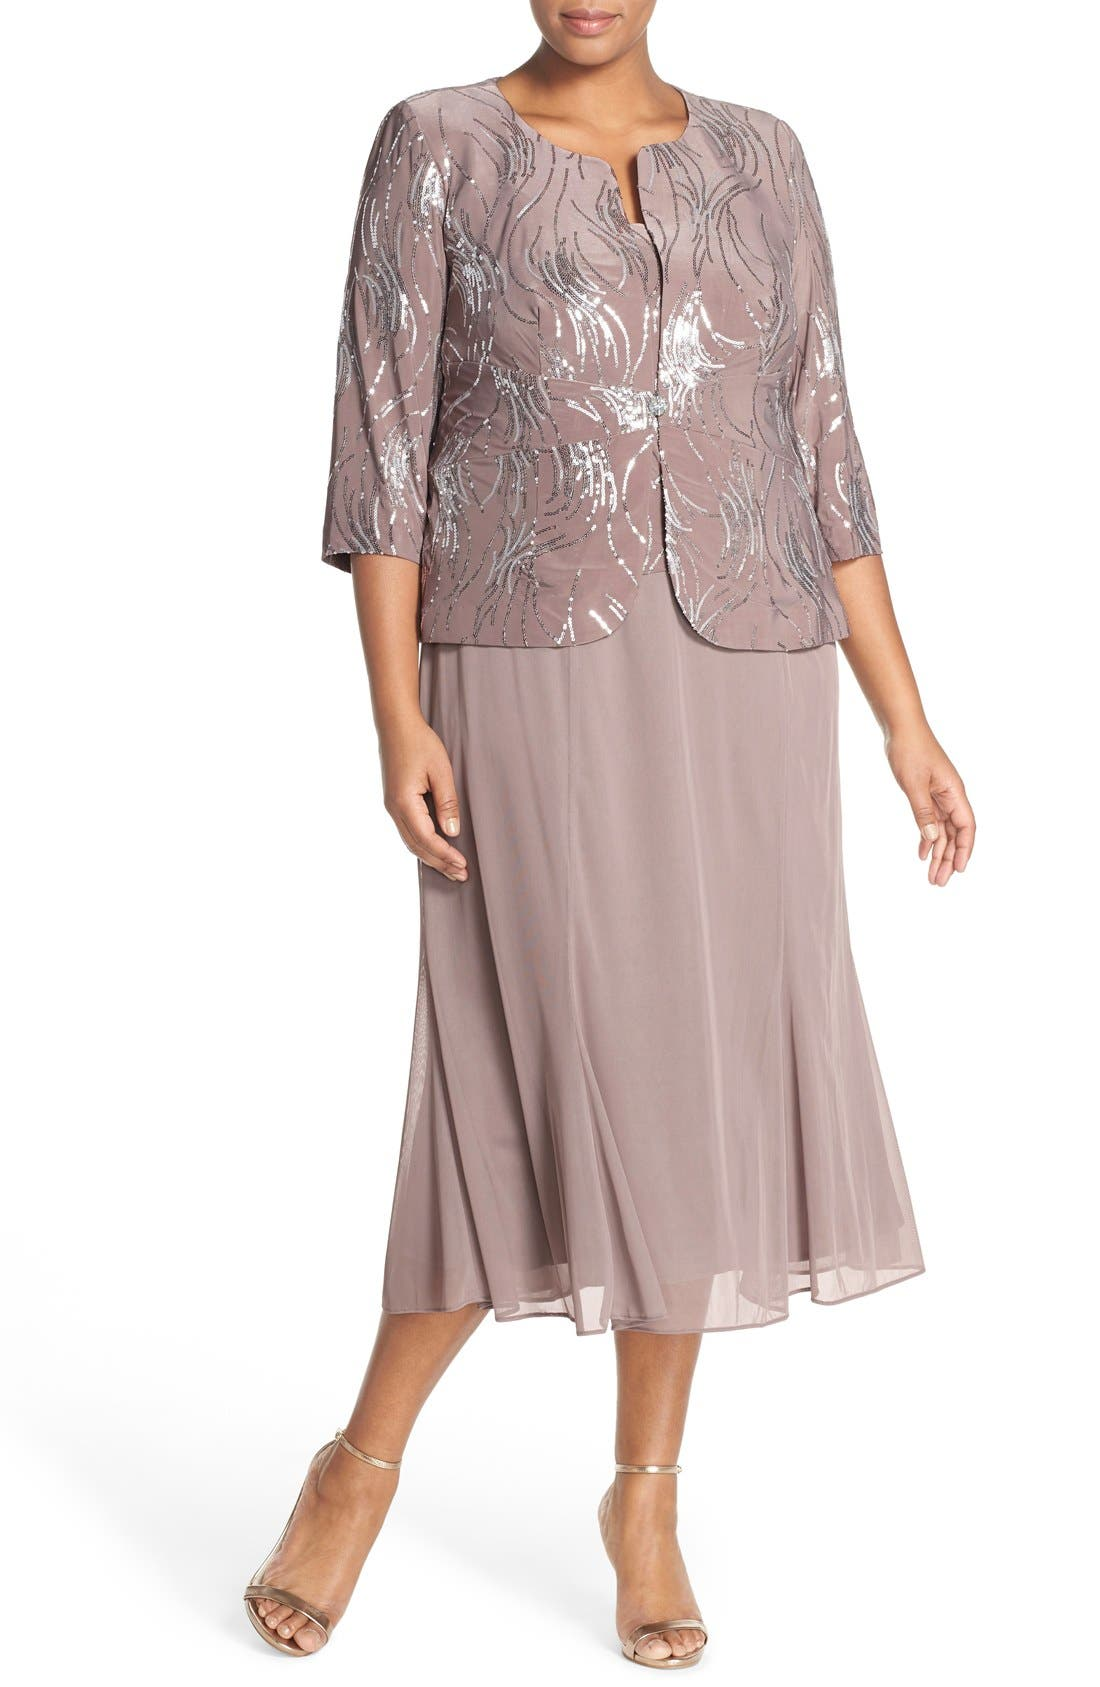 1940s Plus Size Dresses | Swing Dress, Tea Dress Plus Size Womens Alex Evenings Sequin Mock Two-Piece Dress With Jacket Size 14W - Metallic $209.00 AT vintagedancer.com